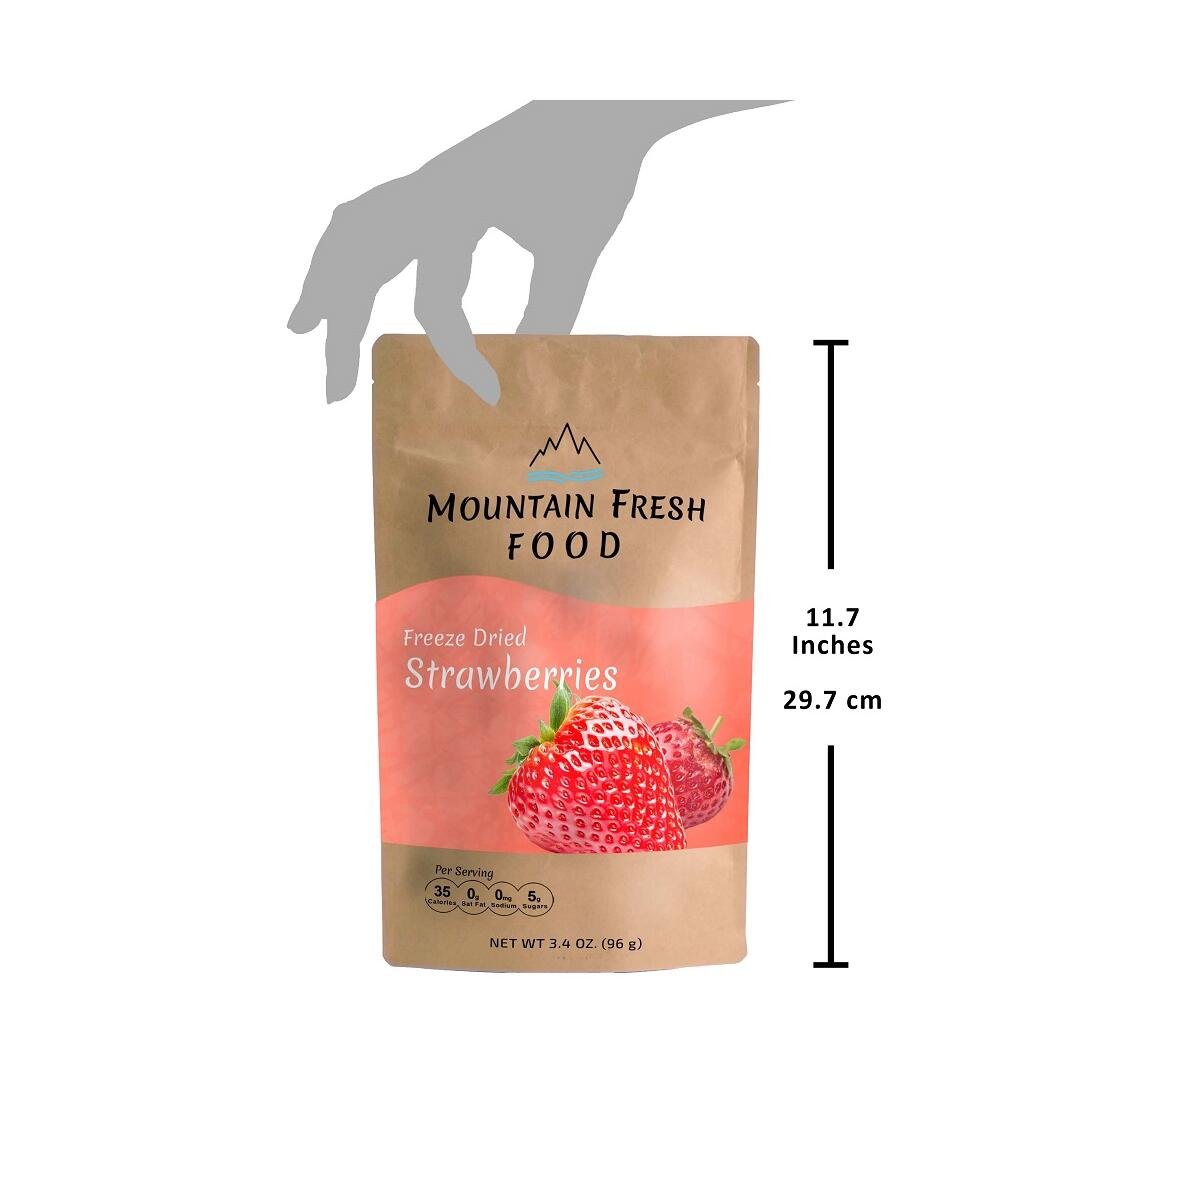 Mountain Fresh Food Freeze Dried Strawberry Chips | All Natural Healthy Dried Fruit Snacks | Crispy Strawberry Slices | Large Resealable Bag | 3.4 Ounces